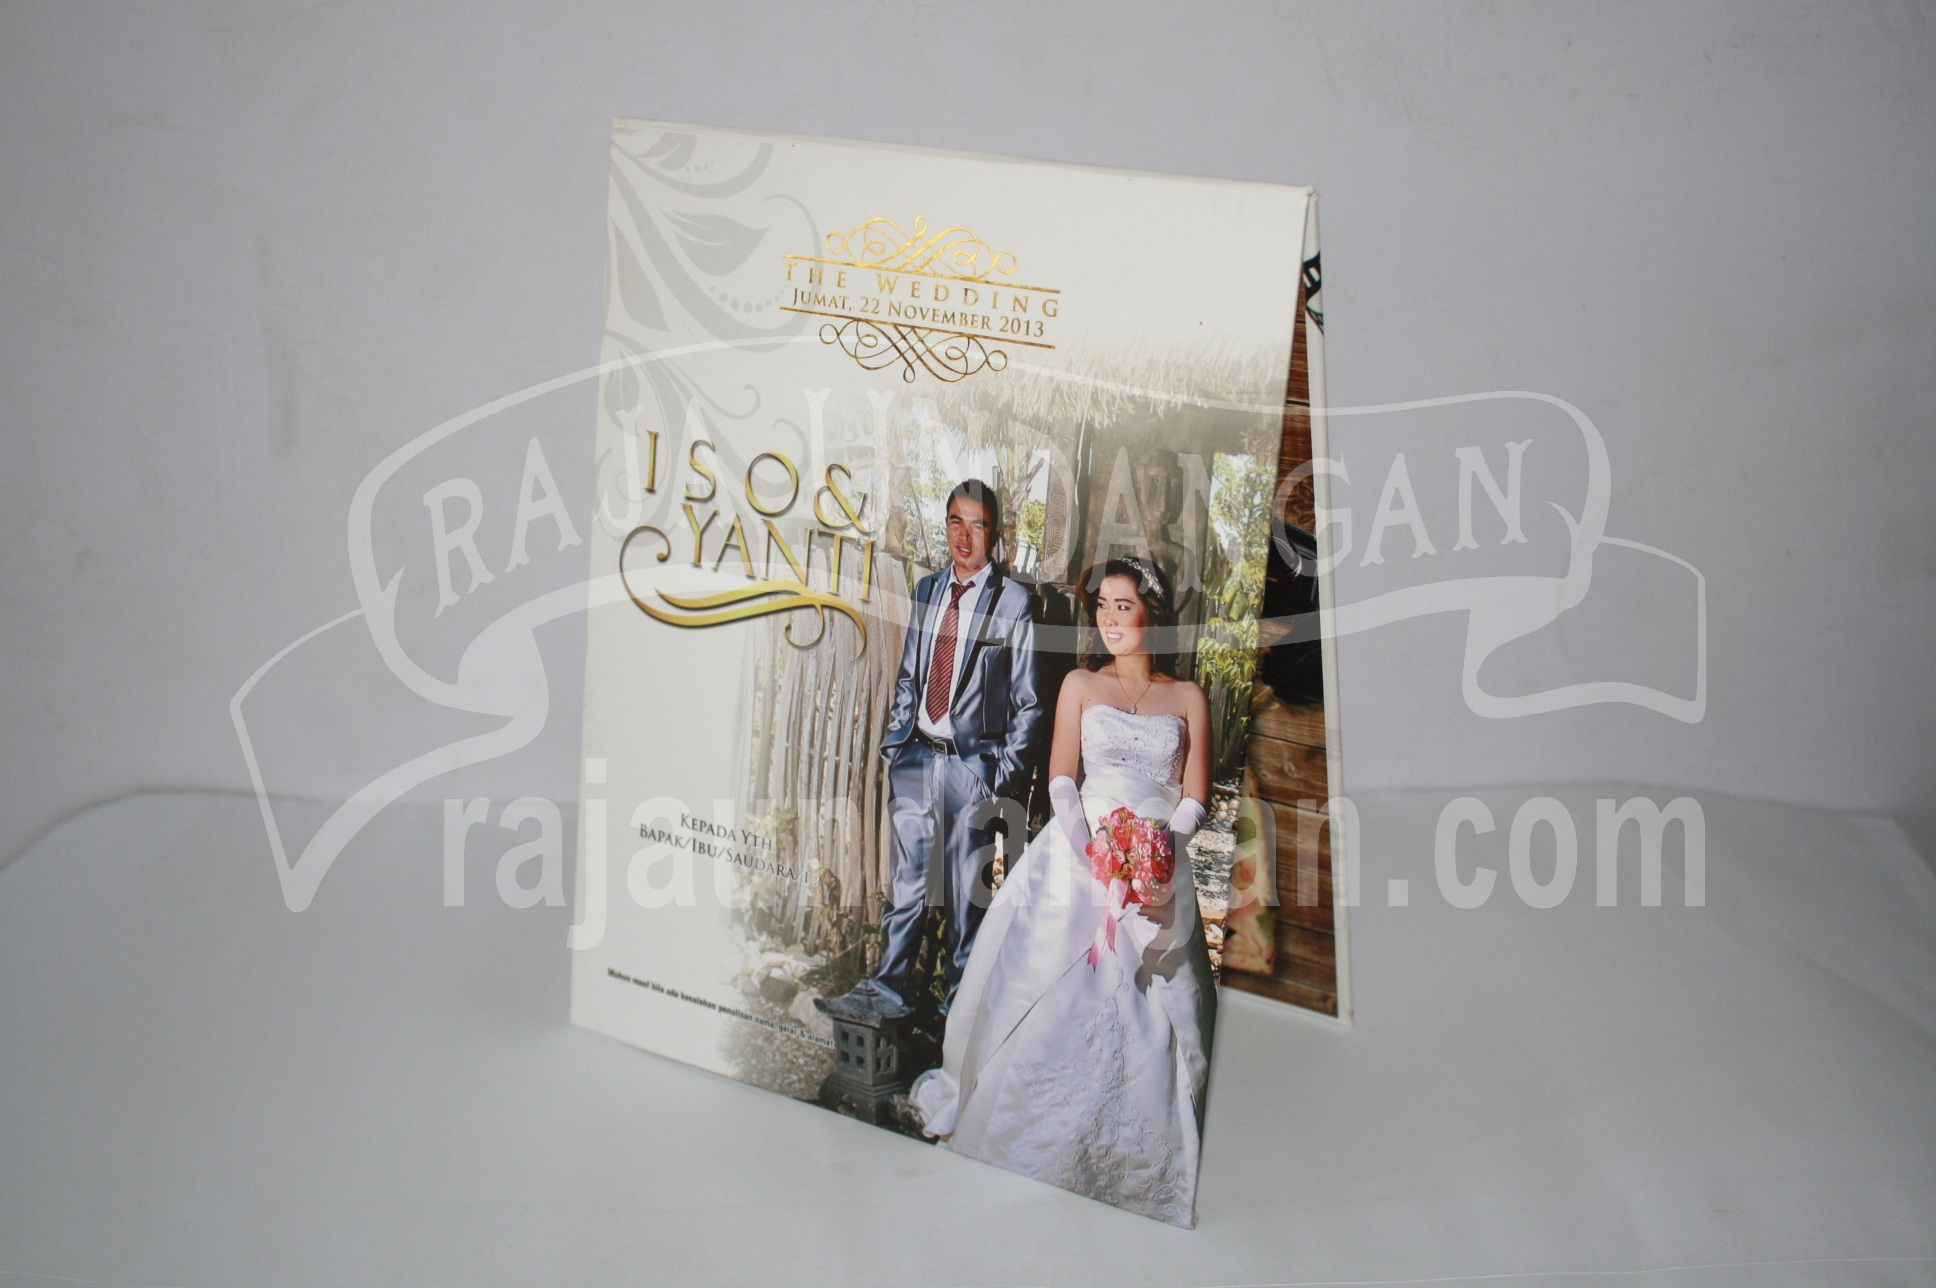 Undangan Pernikahan Hardcover Pop Up Iso dan Yanti EDC 45 - Percetakan Wedding Invitations Unik dan Eksklusif di Tandes